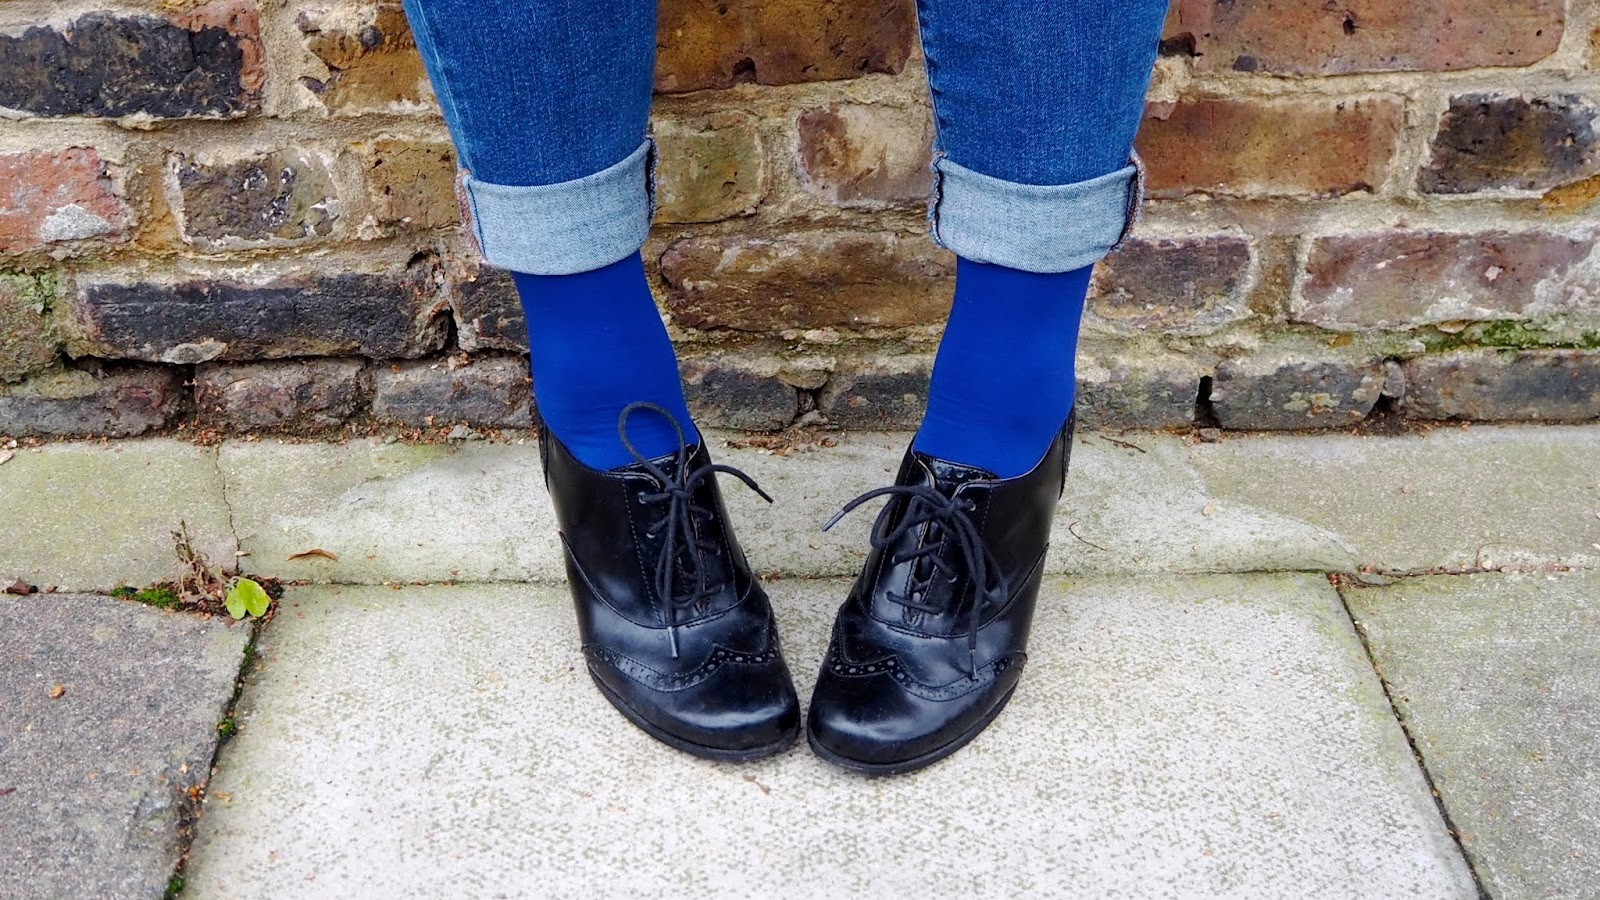 rolled up skinny jeans, royal blue socks, black brogues in front of a brick wall